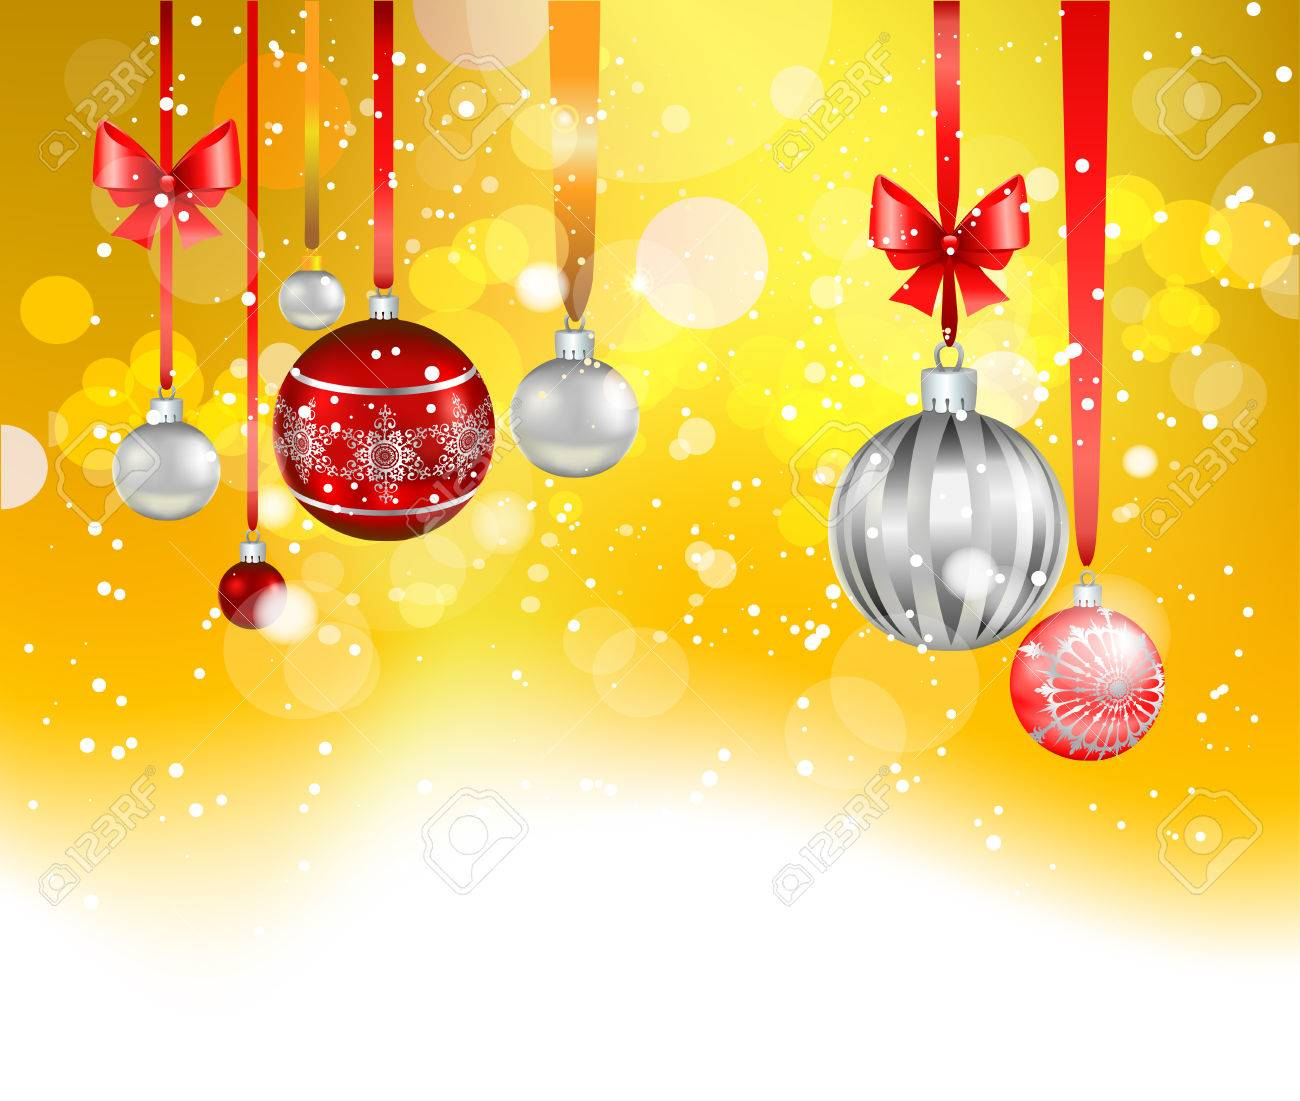 Christmas Leaflet Background.Yellow Holiday Background With Balls Place For Text Christmas